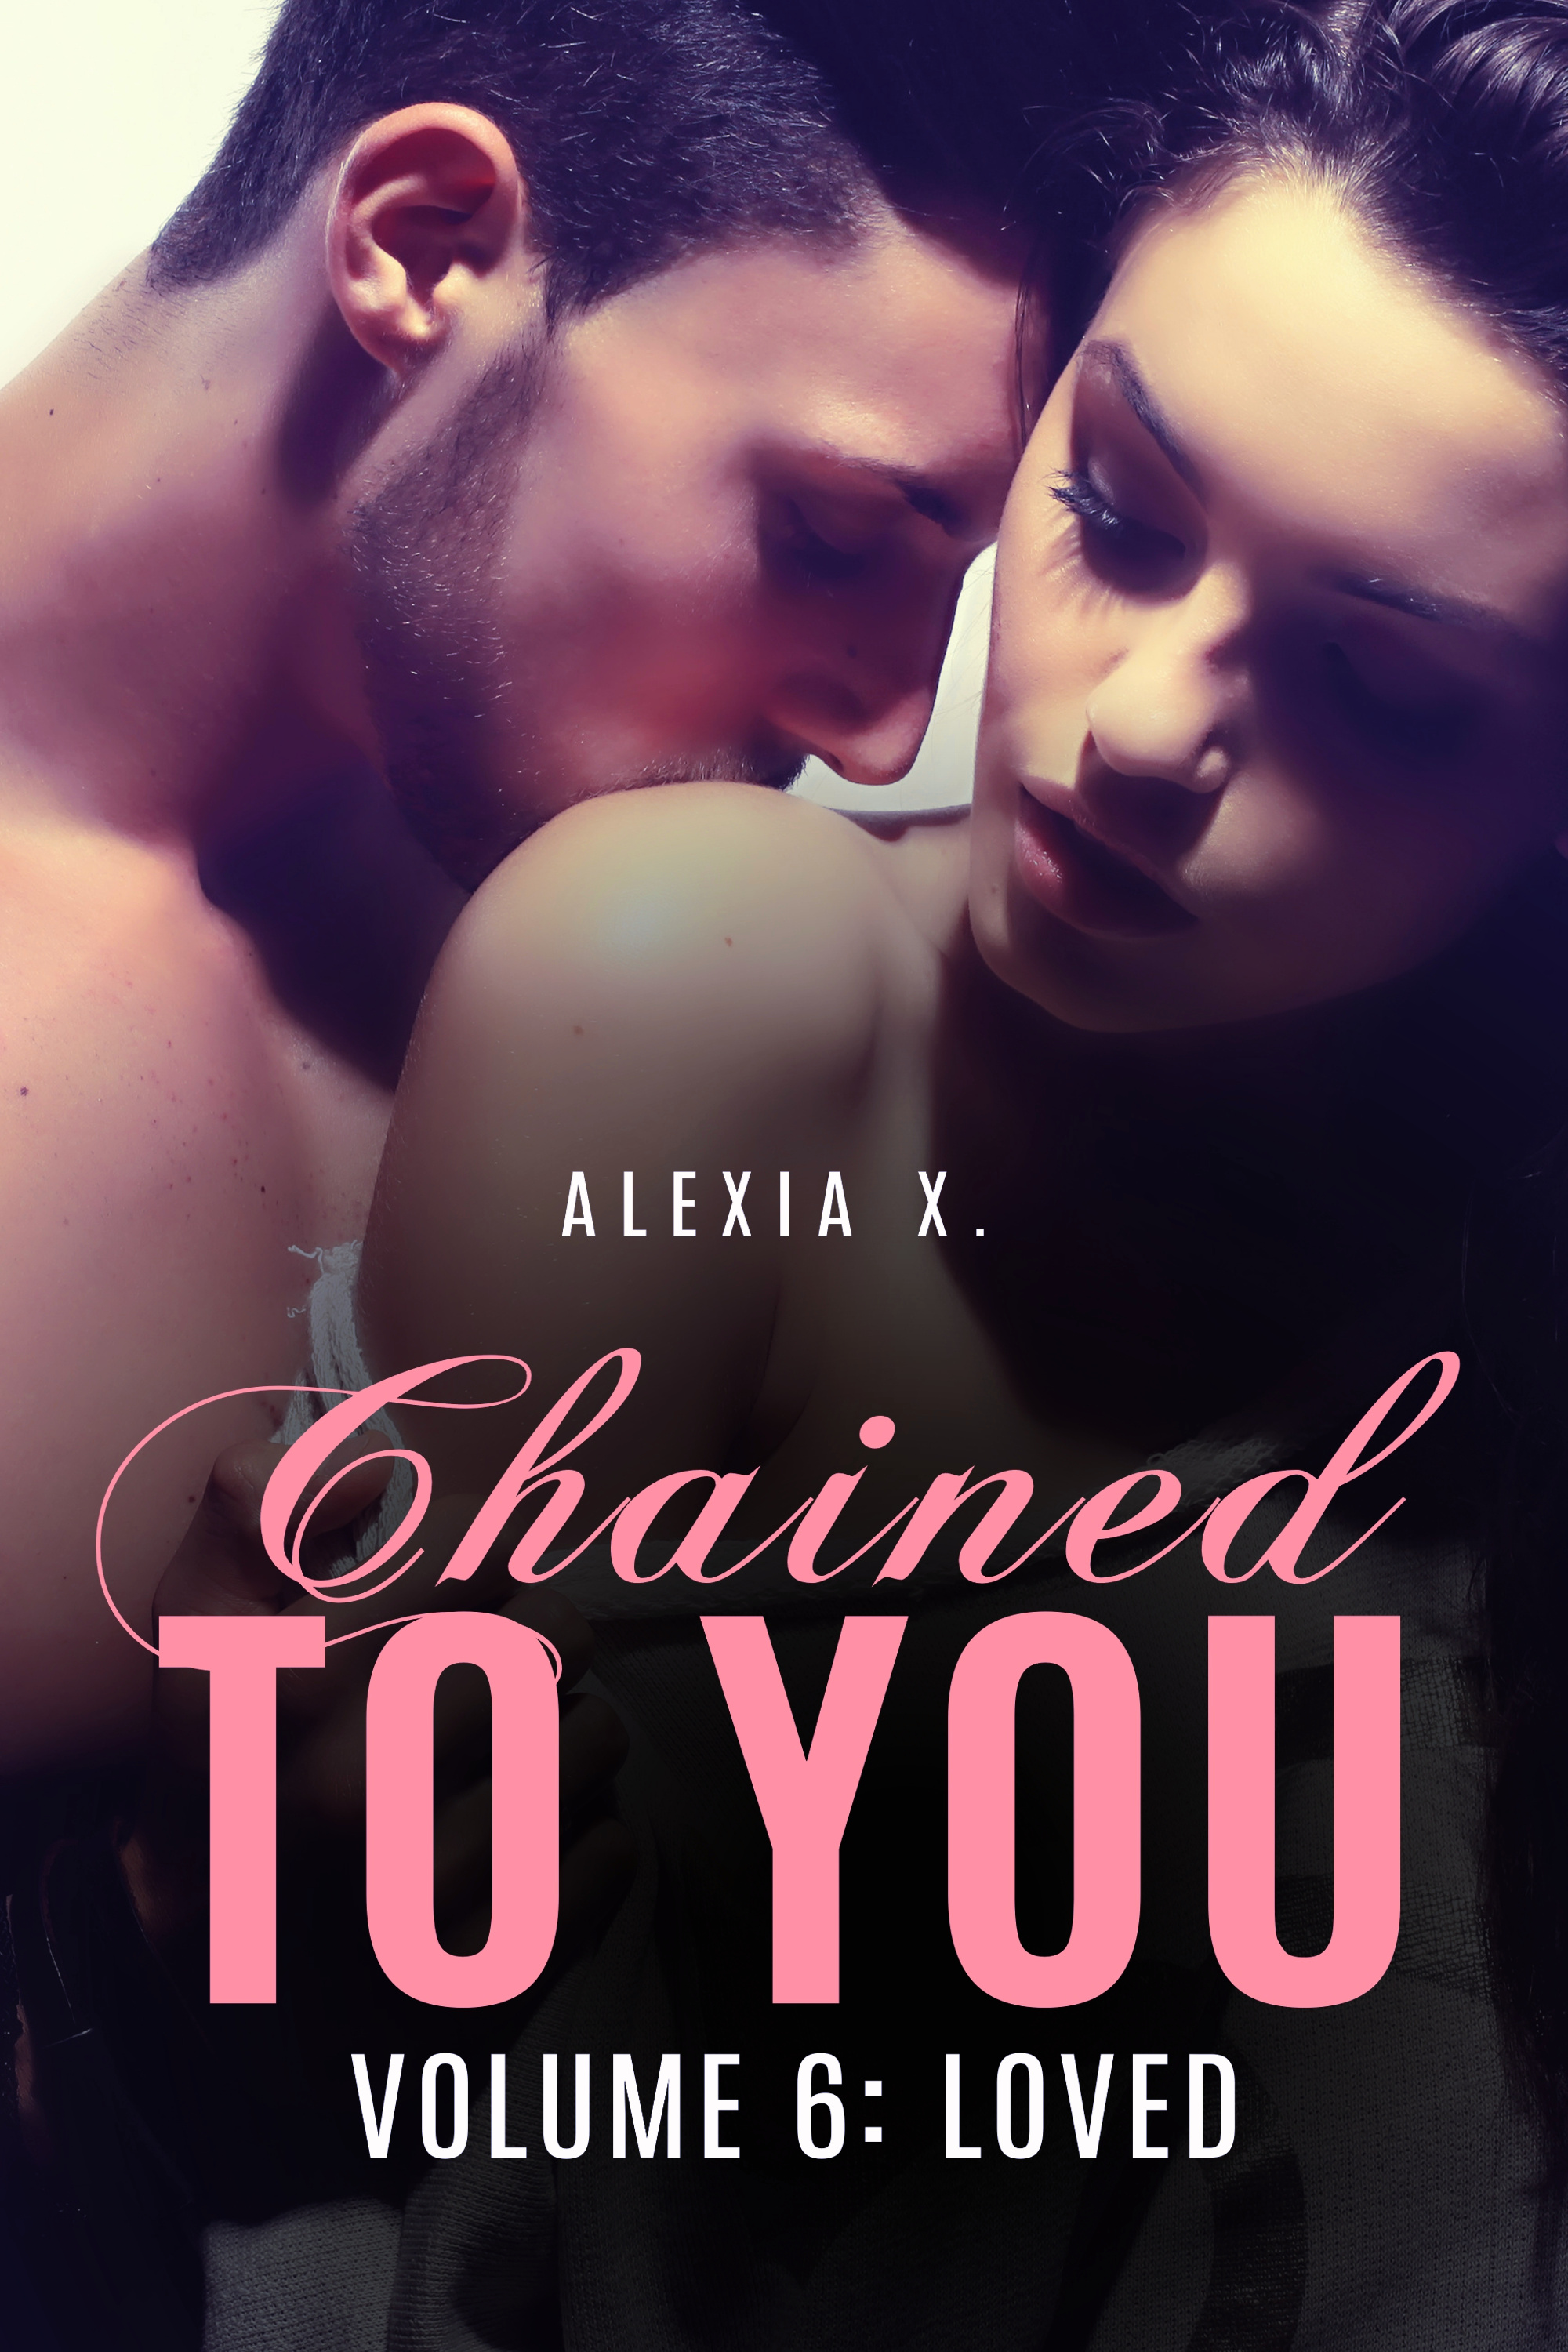 Chained to You Vol. 6